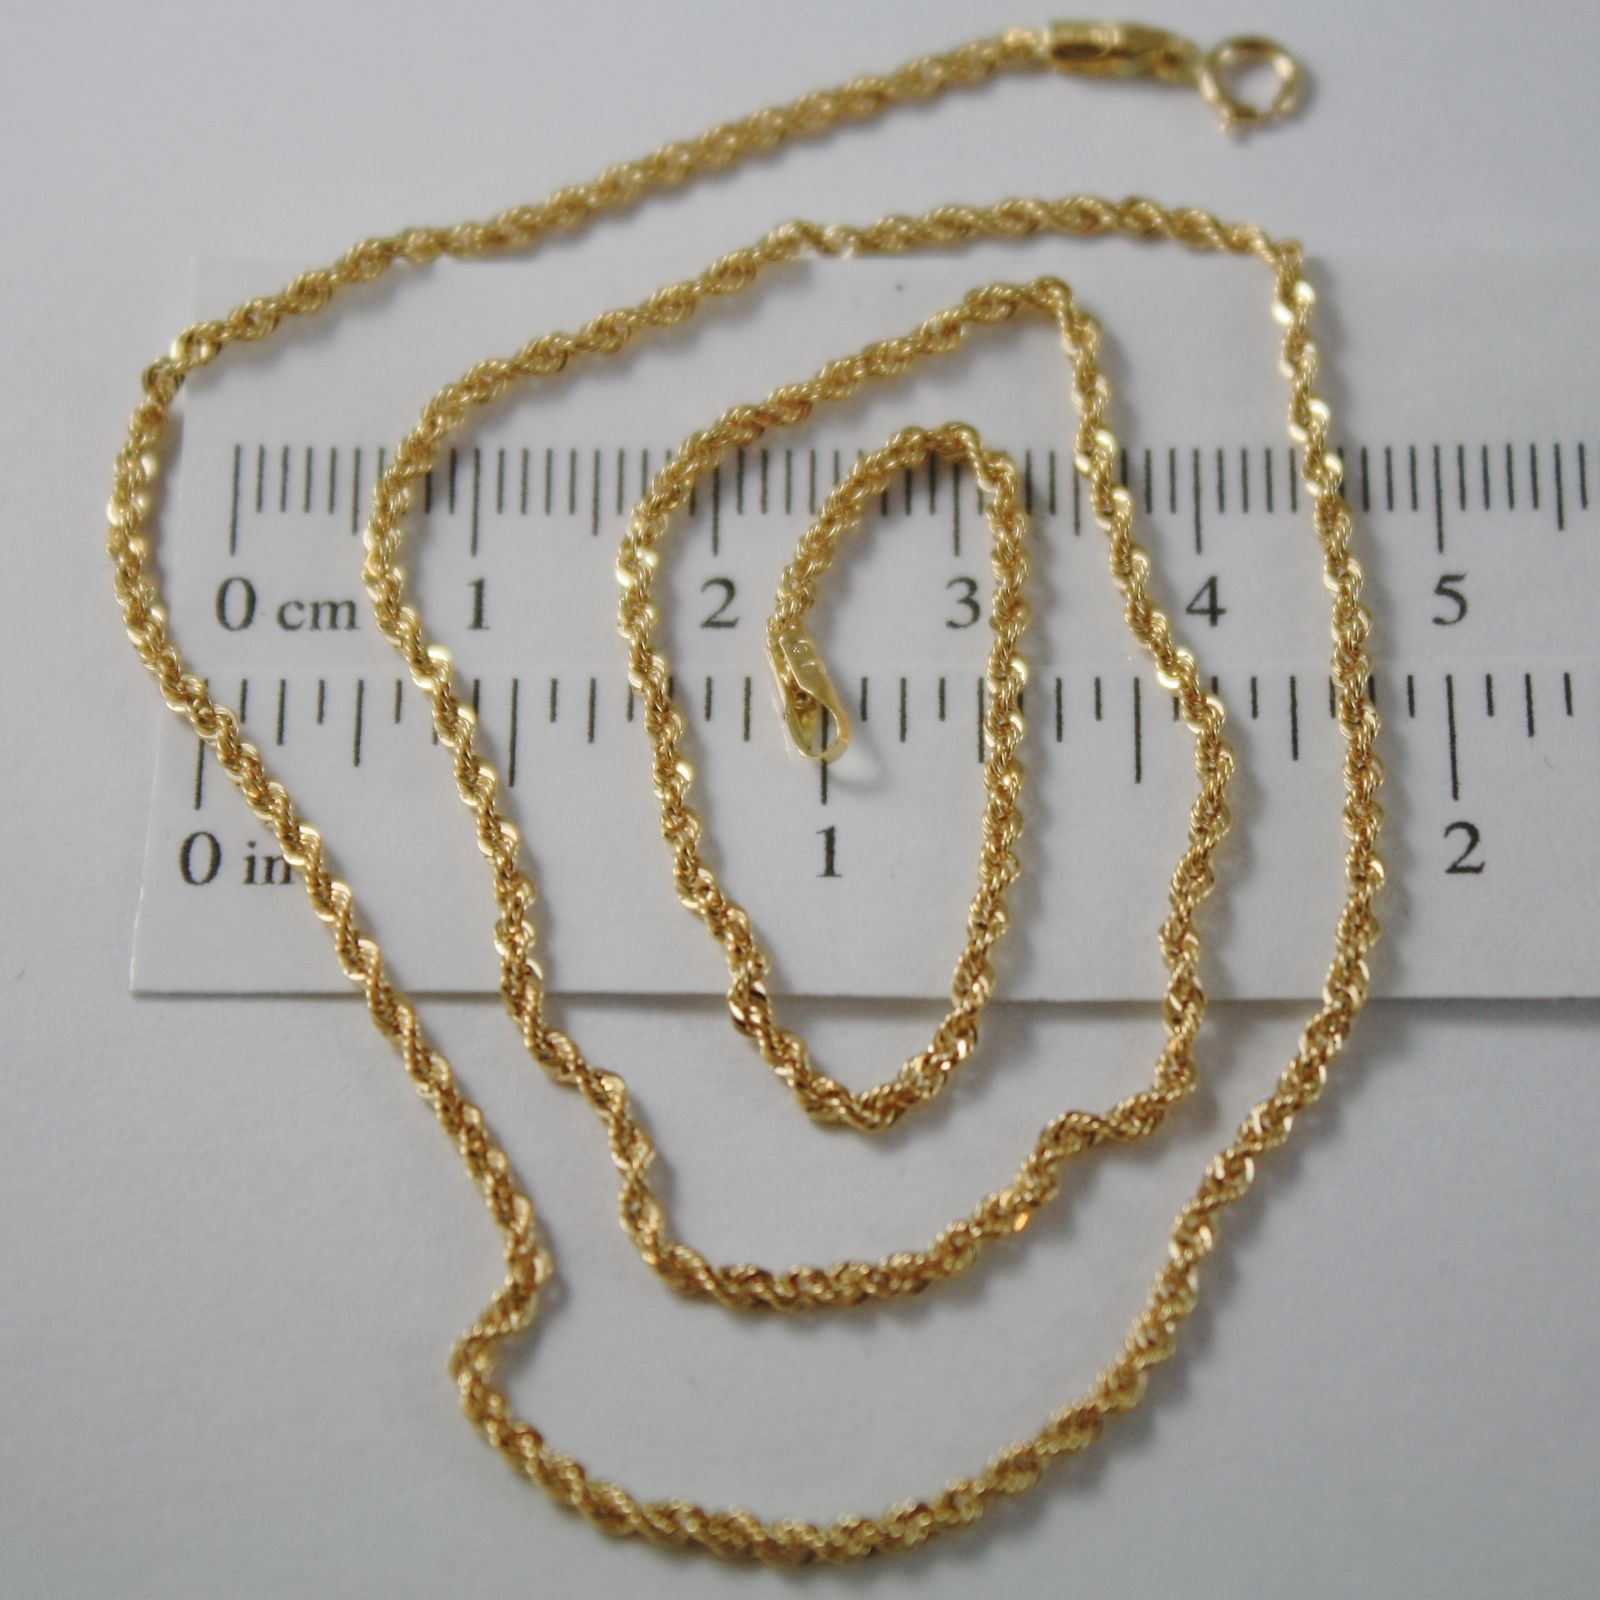 18K YELLOW GOLD CHAIN NECKLACE, BRAID ROPE 16 INCHES, 40 CM LONG, MADE IN ITALY